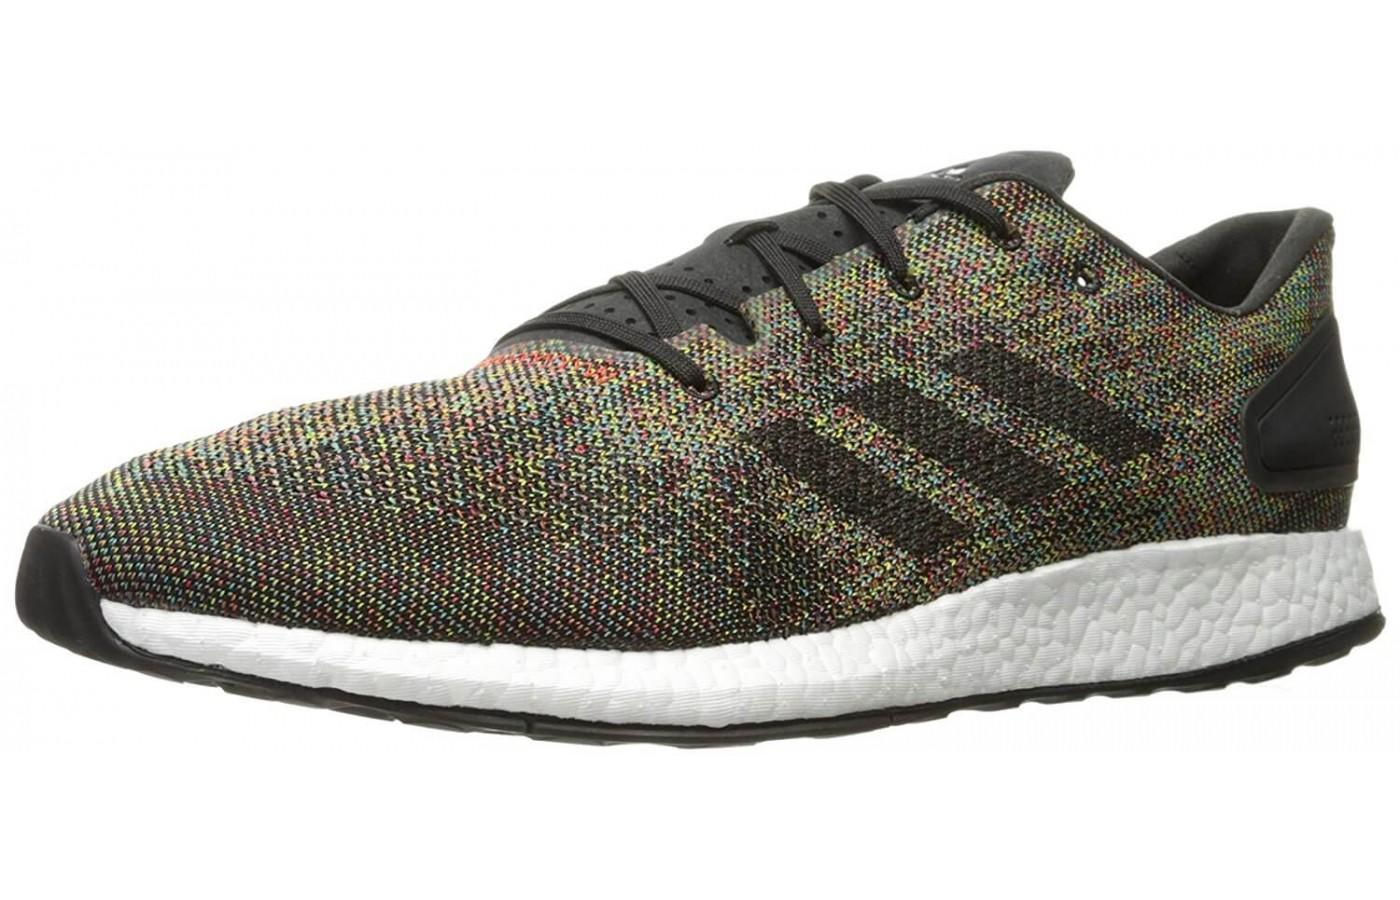 e57de7fce3b81 Adidas PureBOOST DPR LTD - To Buy or Not in May 2019